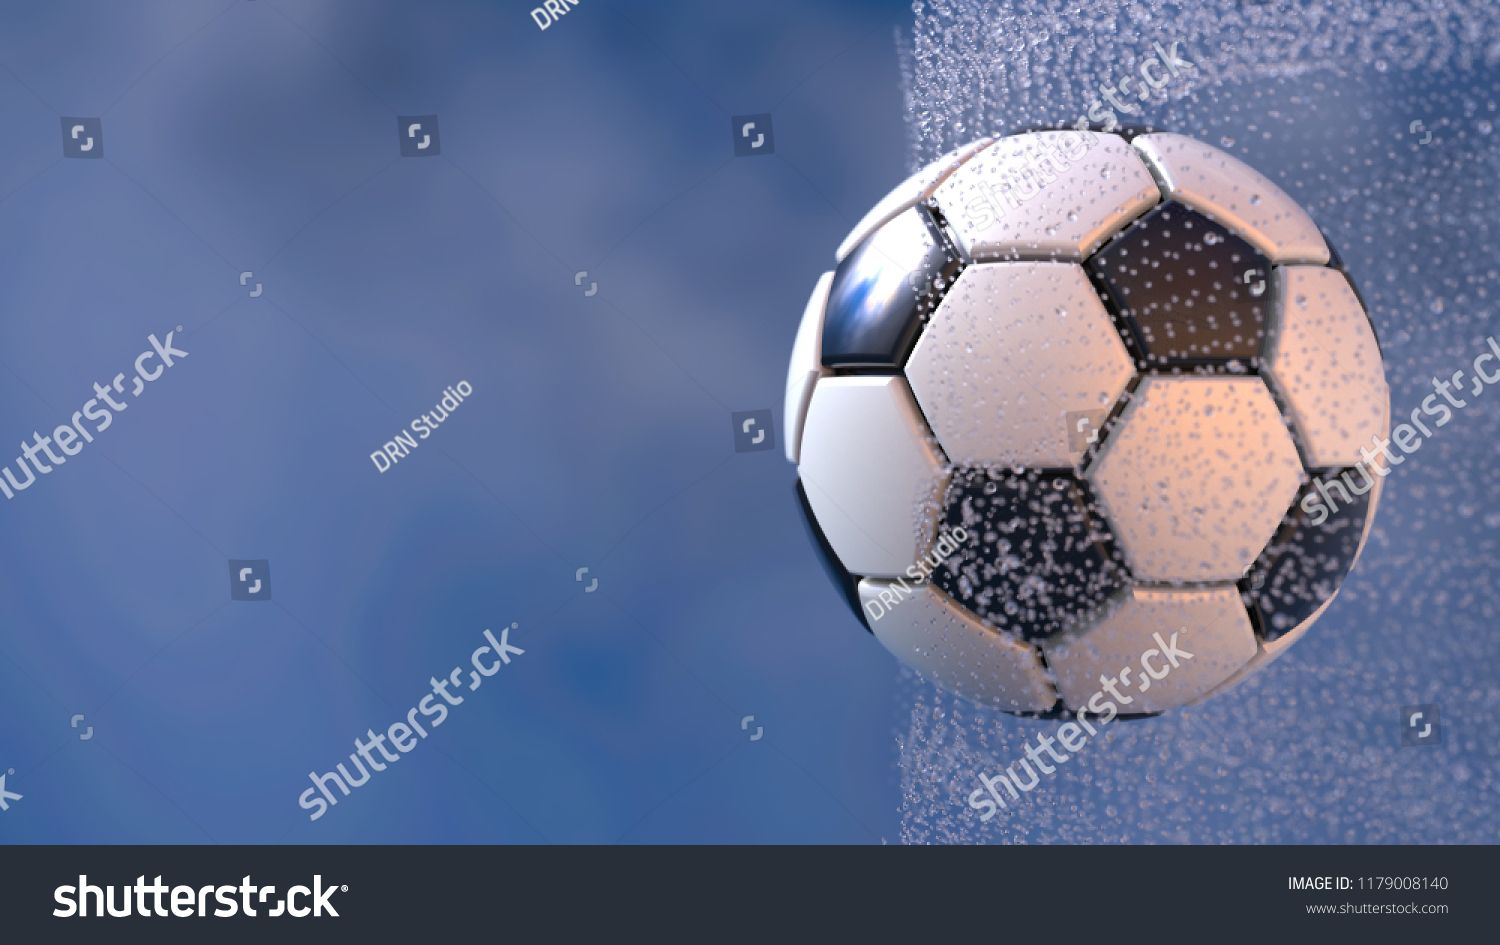 Download Soccer Ball With Water Splash 3d Illustration 3d High Quality Rendering Ad Ad Water Splash Soccer Ball Photo Editing Stock Photos Soccer Ball